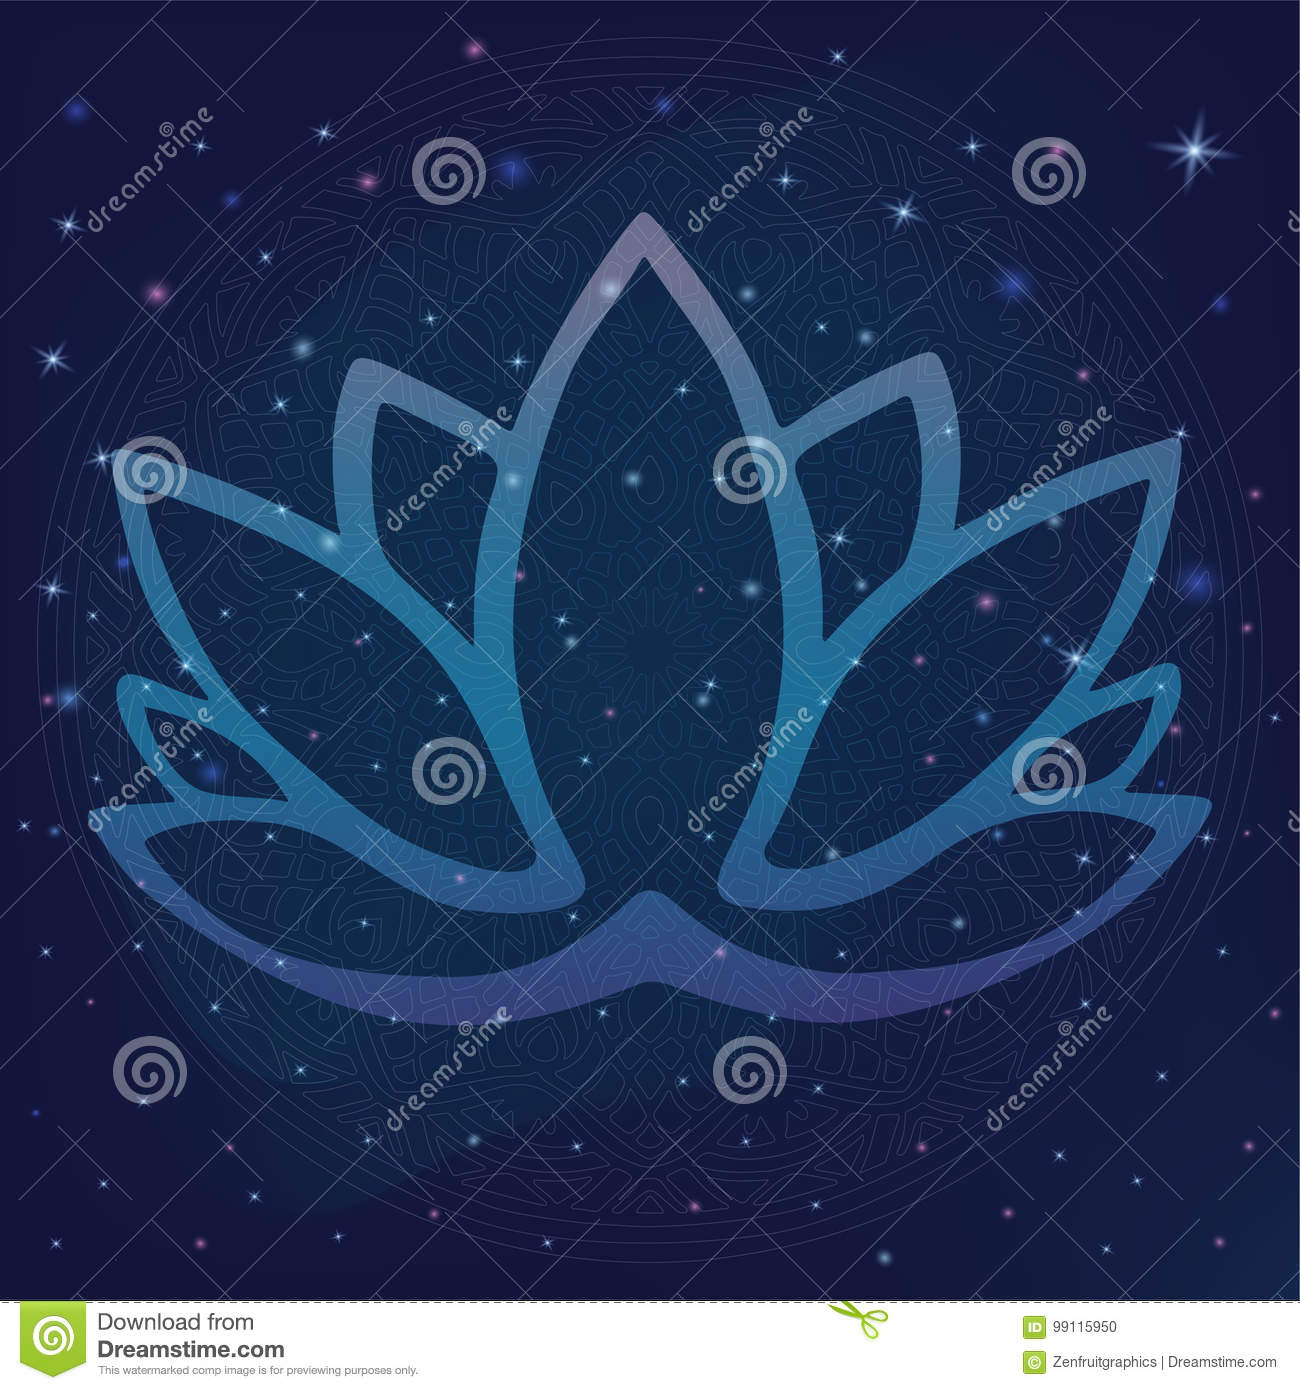 Stylized Outline Lotus Flower Logo In Shades Of Blue And Purple